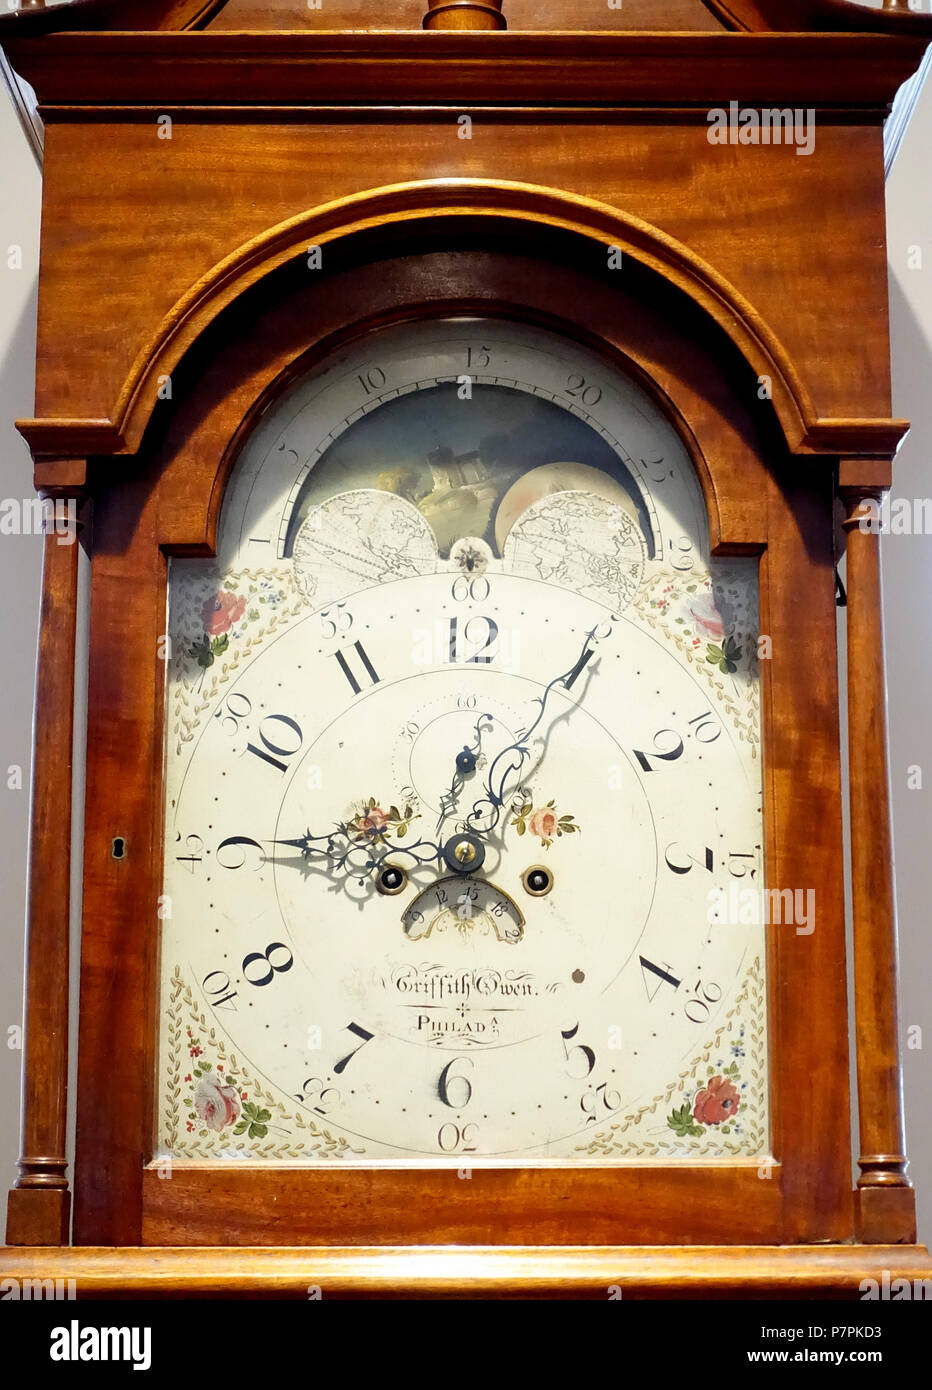 English: Tall case clock by Griffith Owen, Philadelphia, c. 1790-1800 - Dartmouth College, Hanover, New Hampshire, USA. 14 April 2015, 09:07:26 363 Tall case clock by Griffith Owen, Philadelphia, c. 1790-1800, view 2 - Dartmouth College - DSC01631 Stock Photo